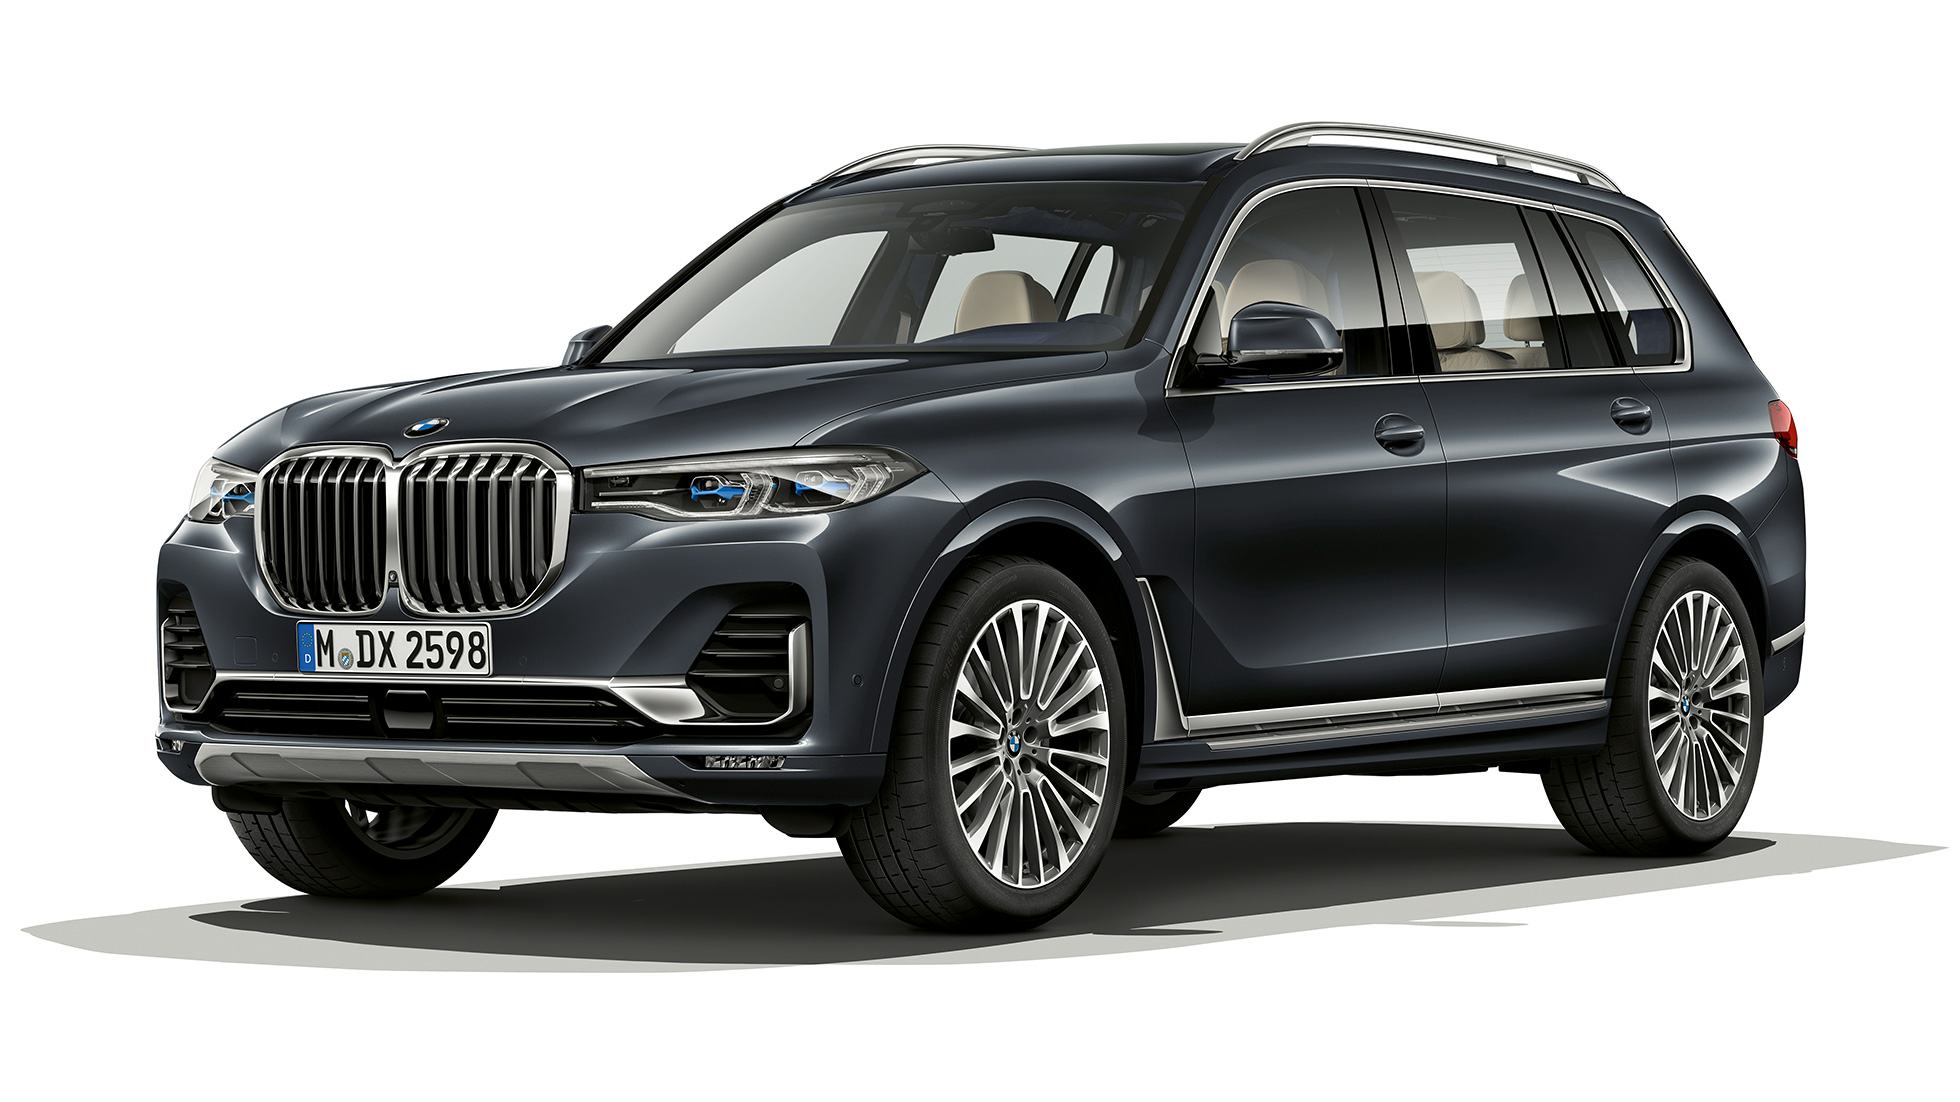 Studio shot of the BMW X7 three-quarter front view in Design Pure Excellence.